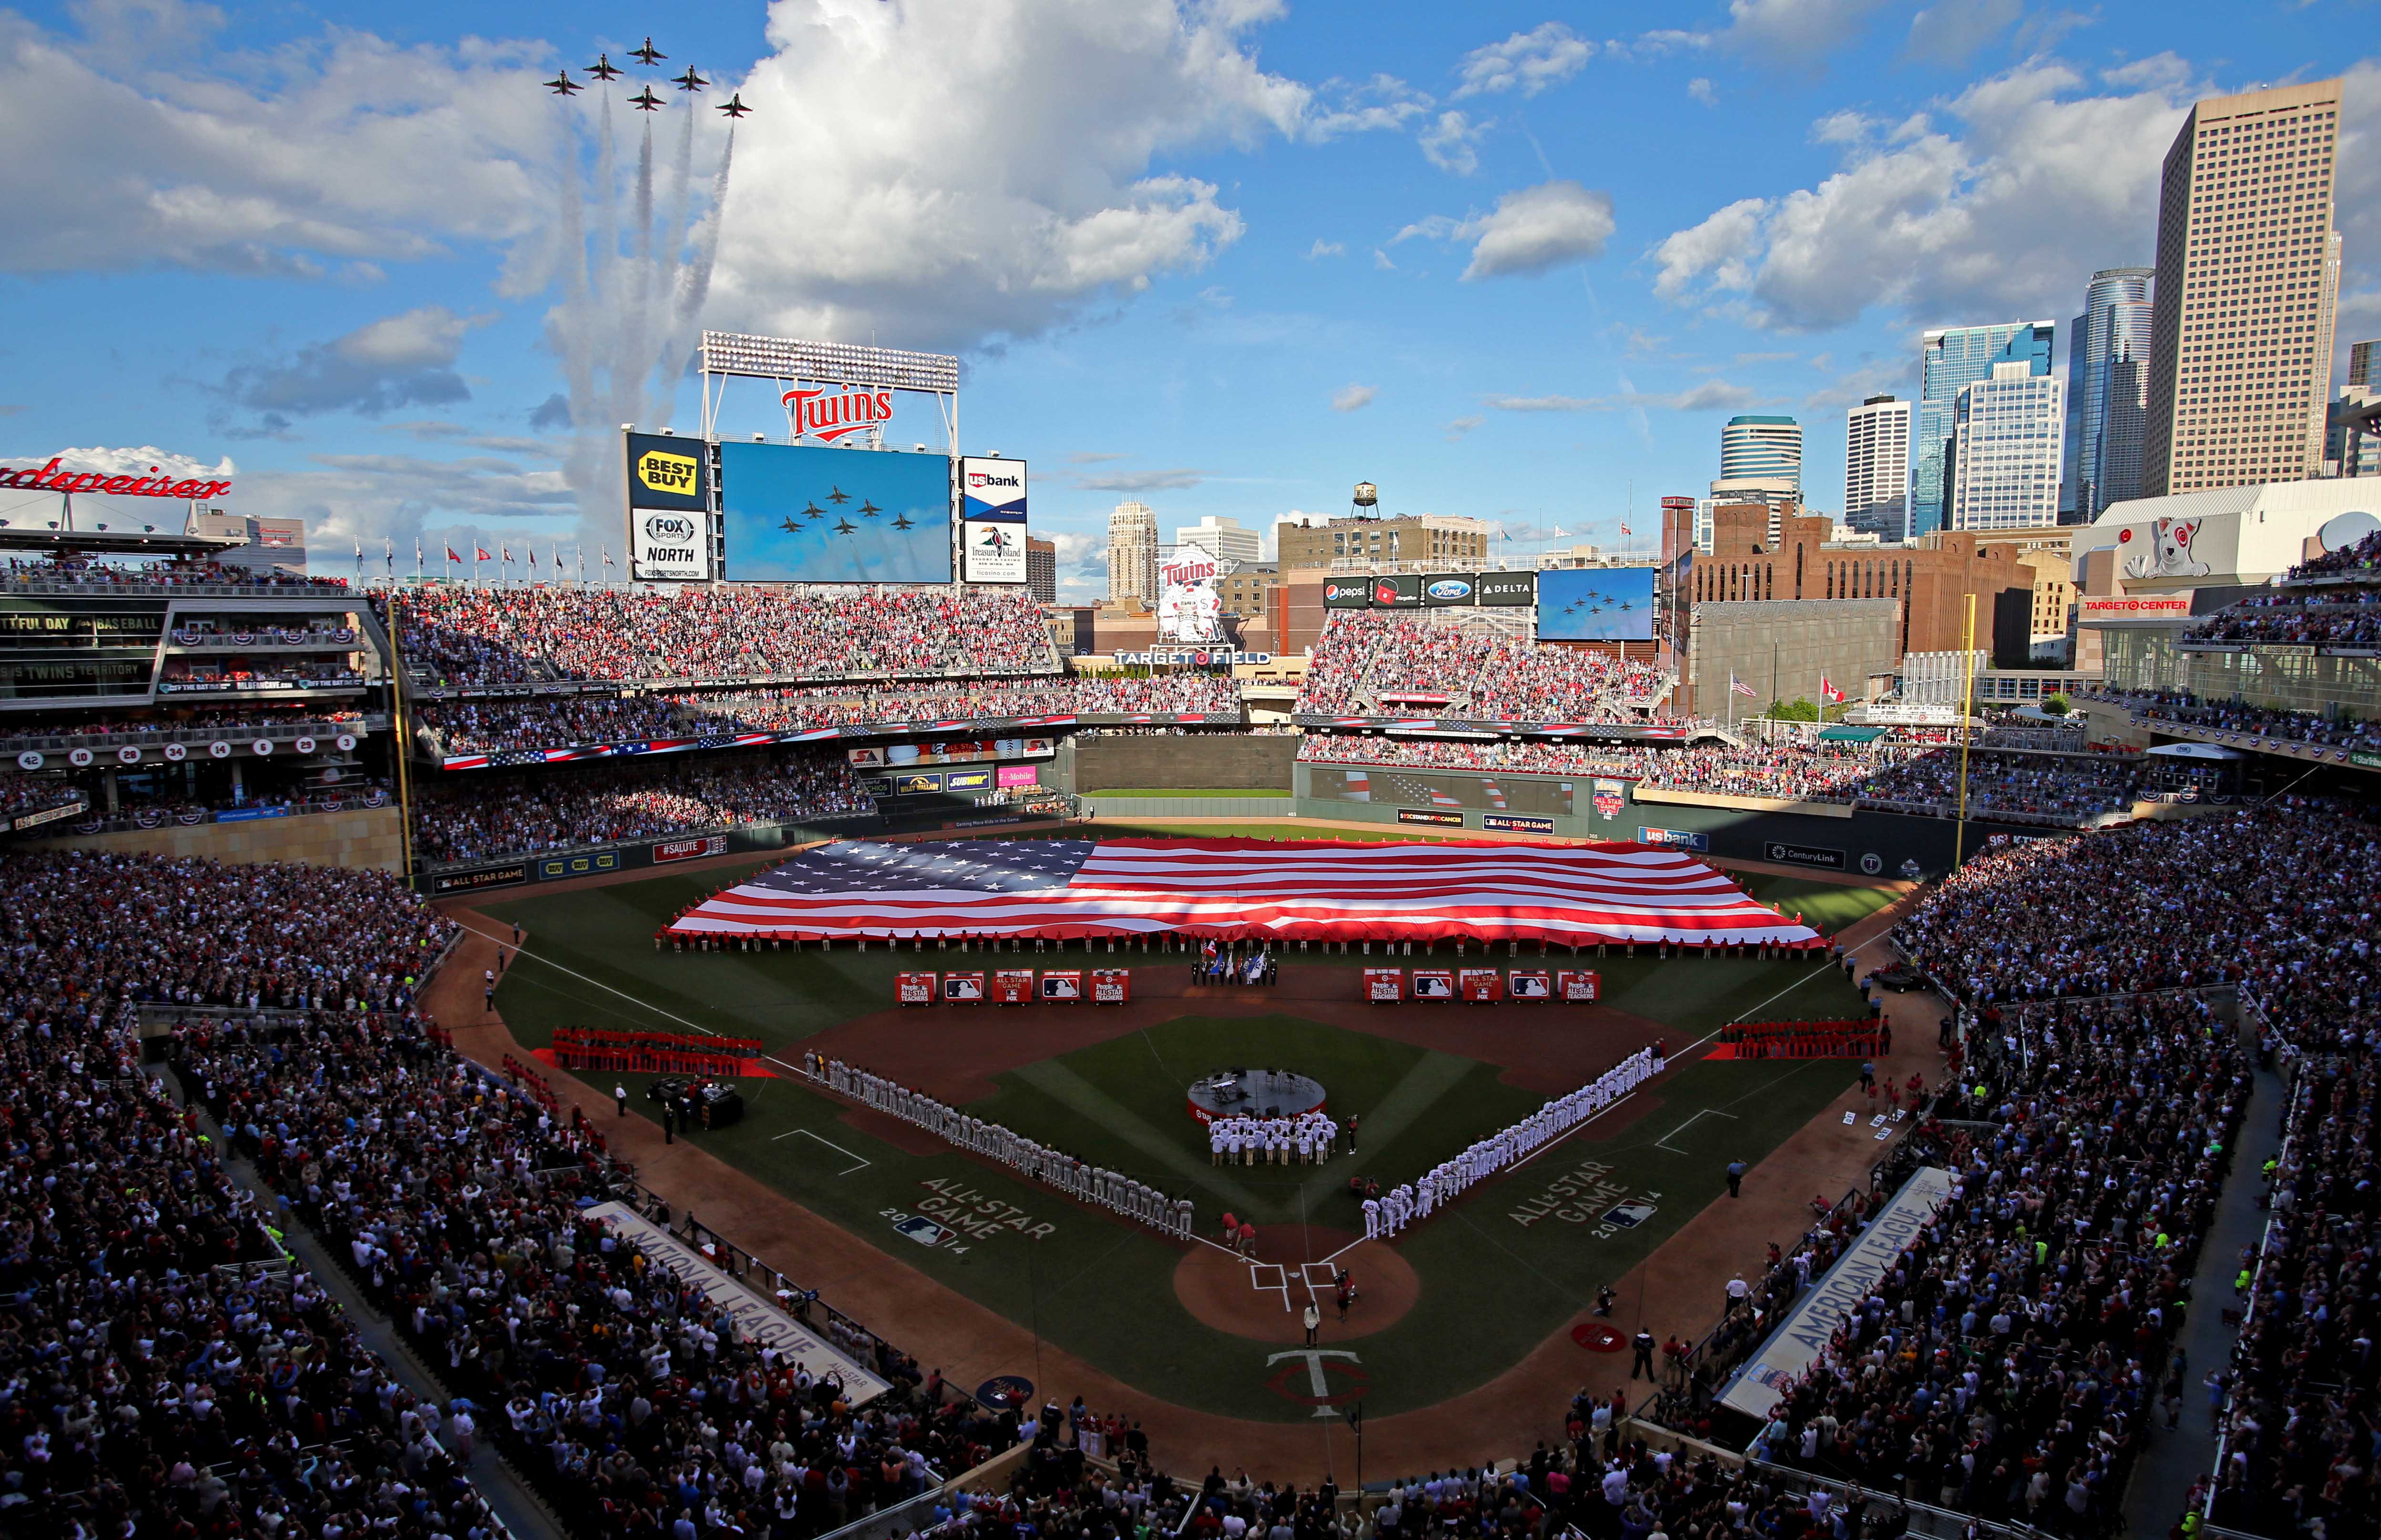 The U.S. Air Force Thunderbirds perform a flyover during the national anthem before the All Star Game at Target Field.